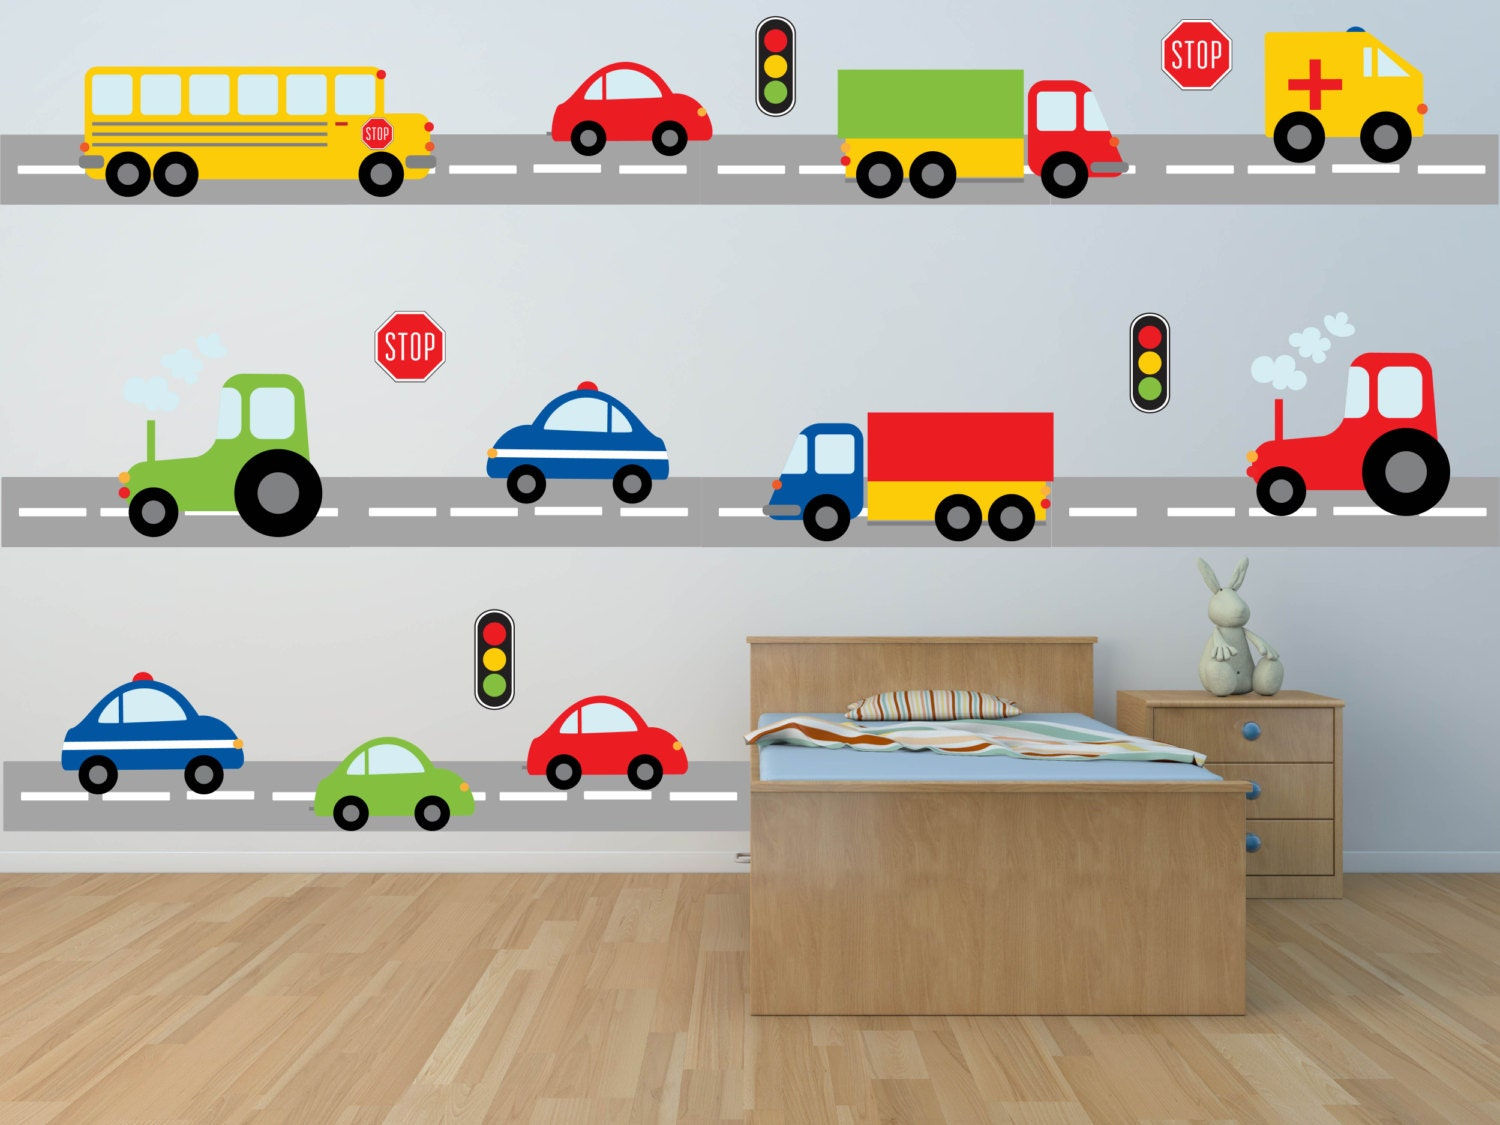 Train Wall Decal Transportation Wall Decal Personalized - Wall decals cars